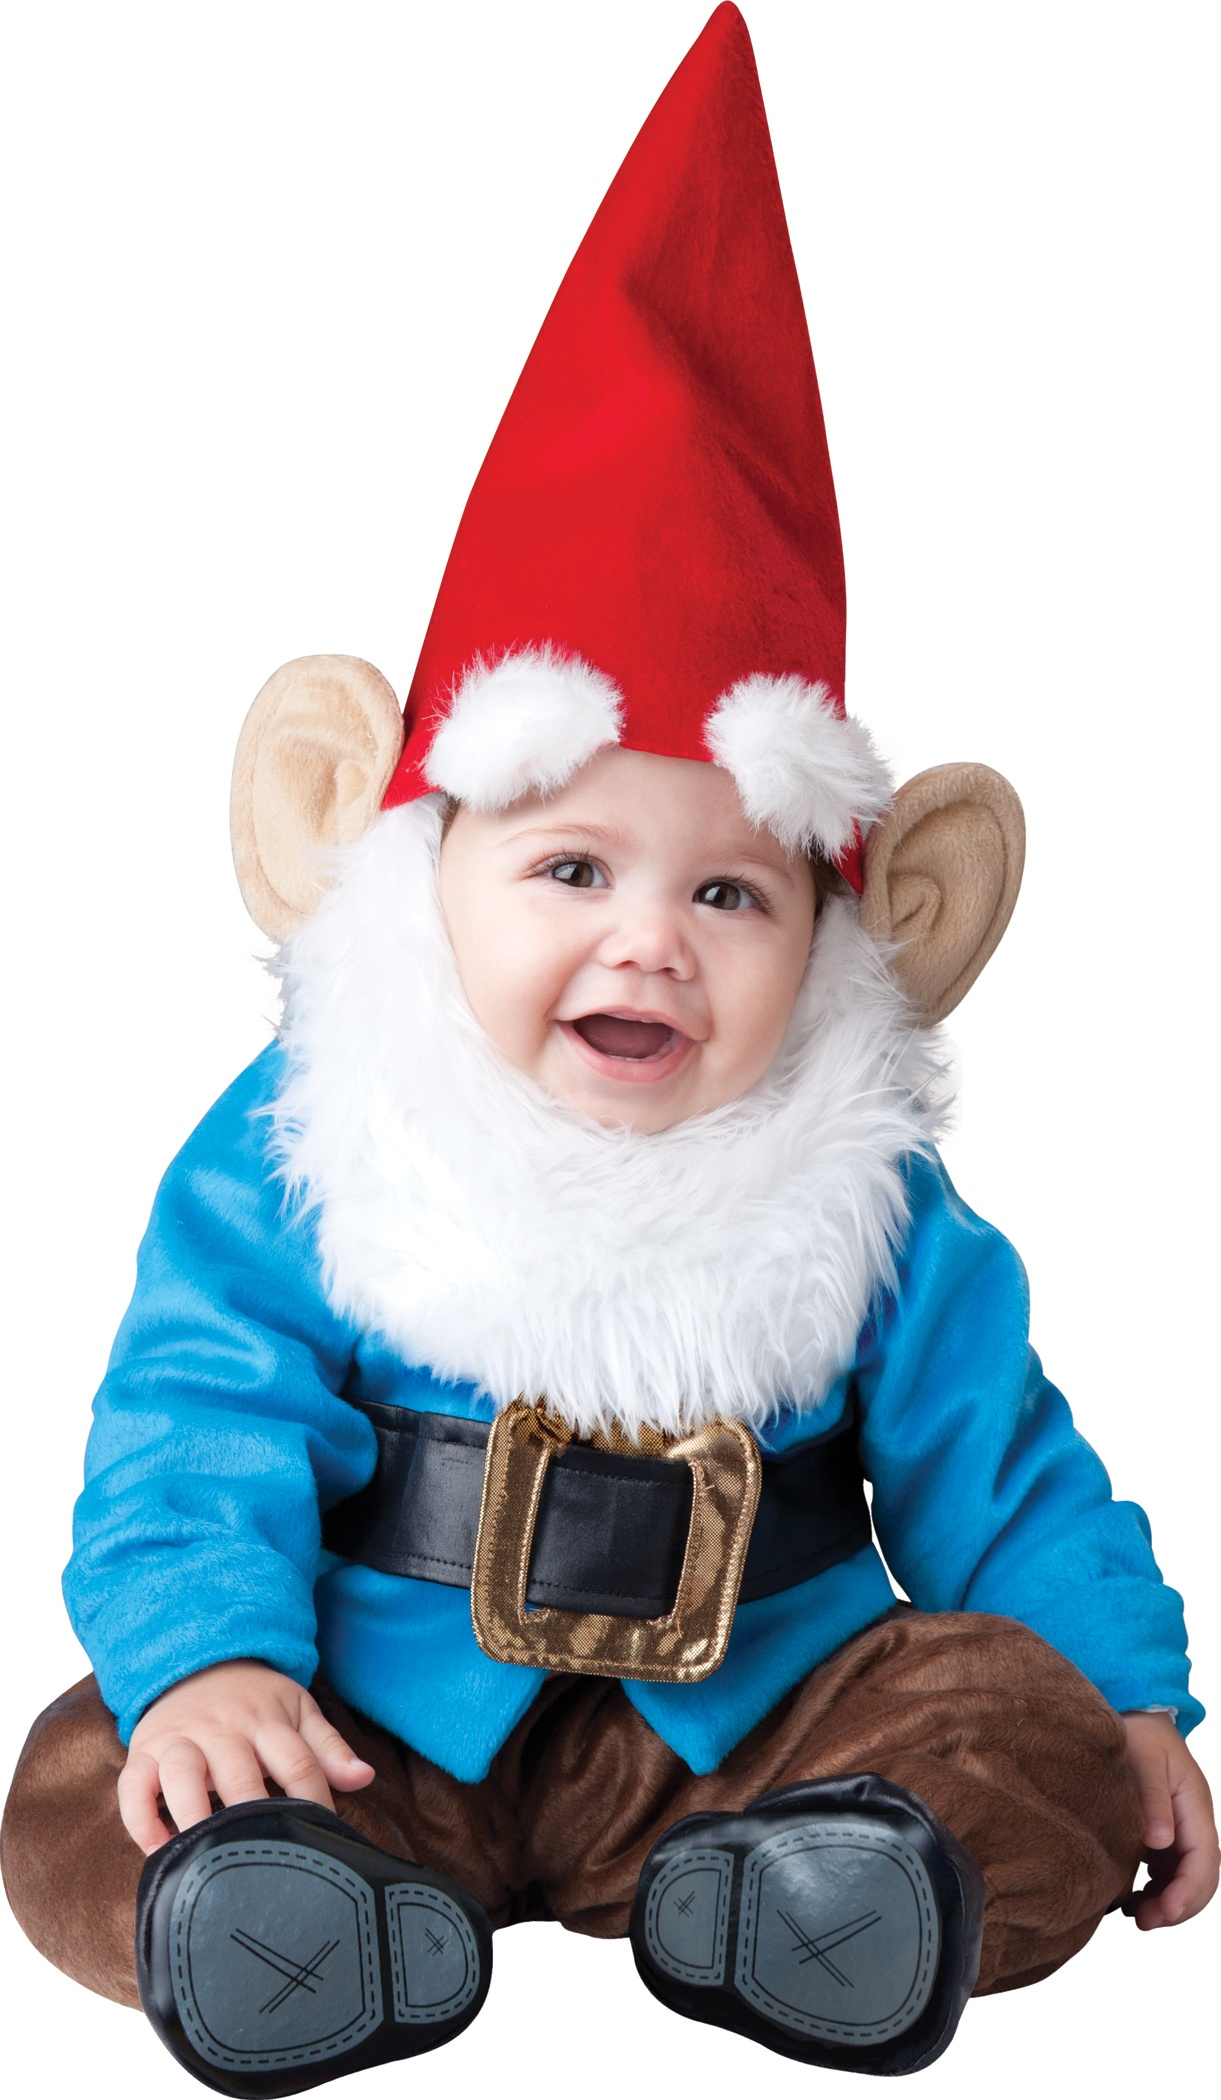 Baby Gnome: Lil' Garden Gnome Baby Costume